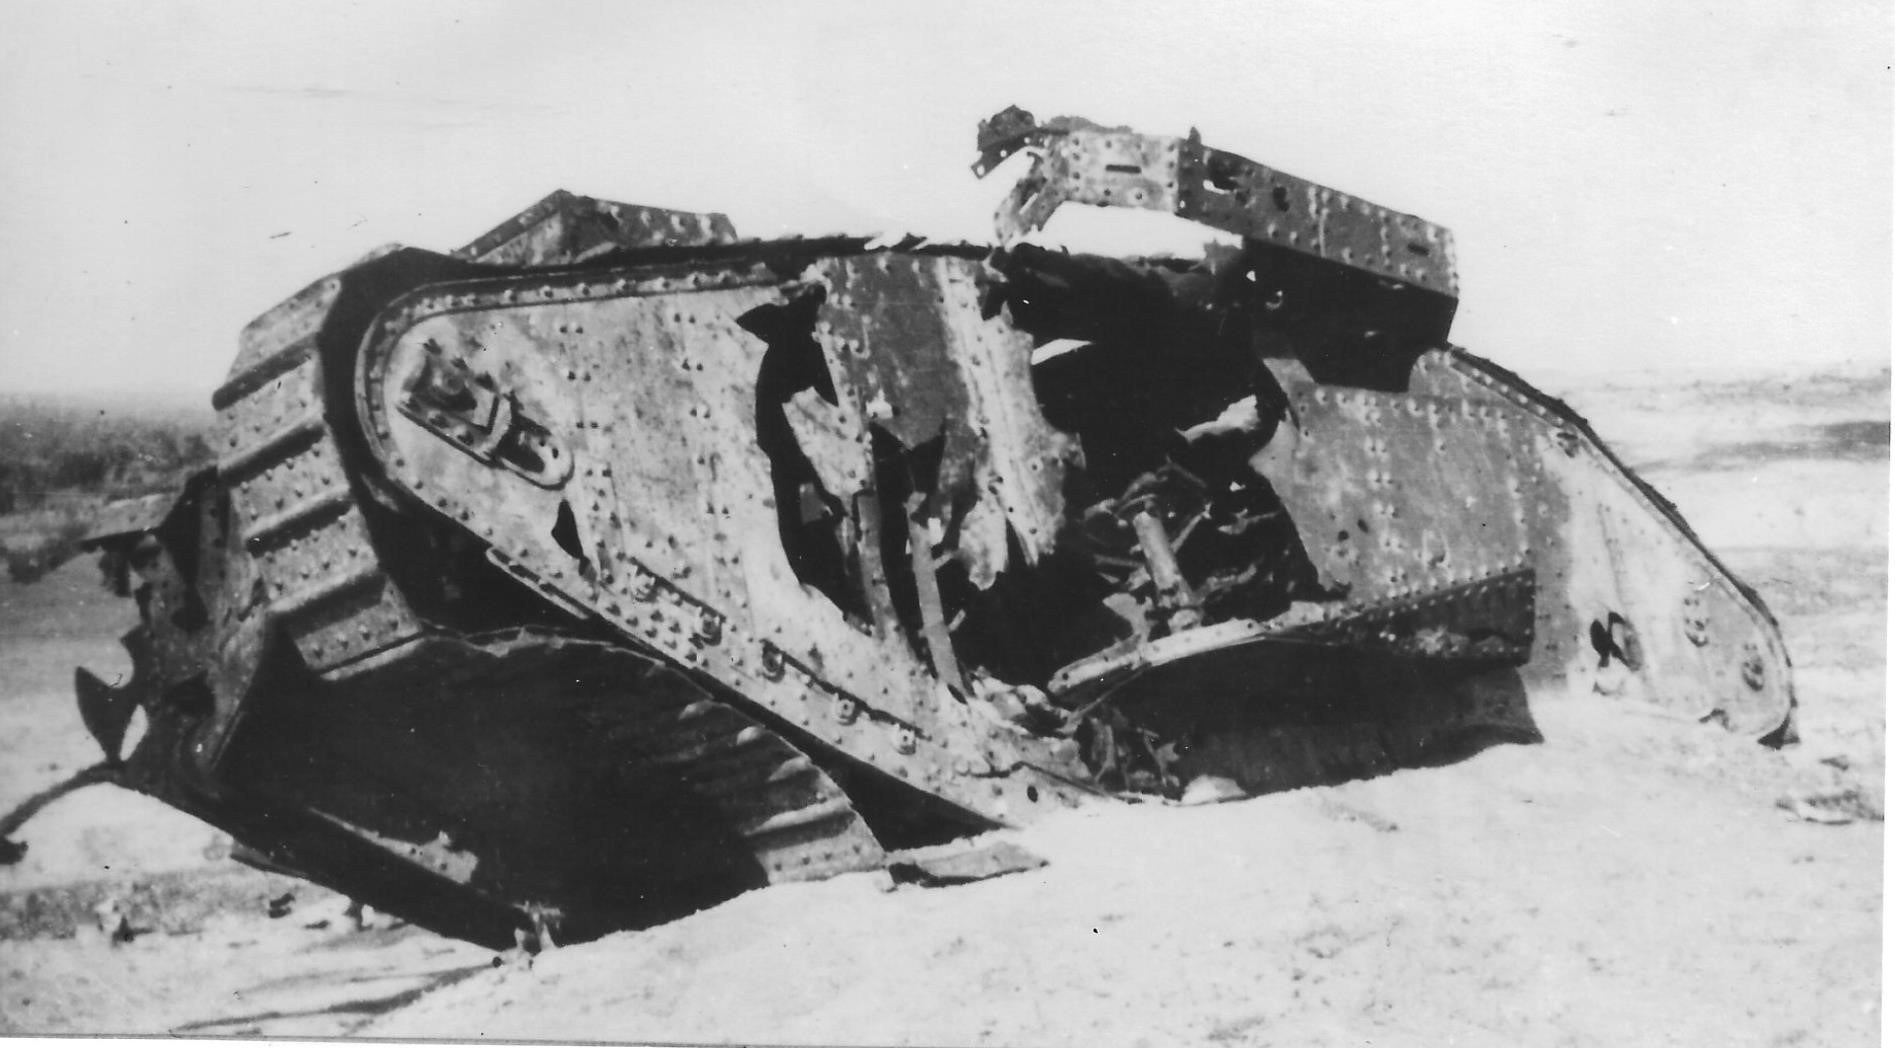 The devastated remains of War Baby a female tank that was struck by artillery and destroyed.